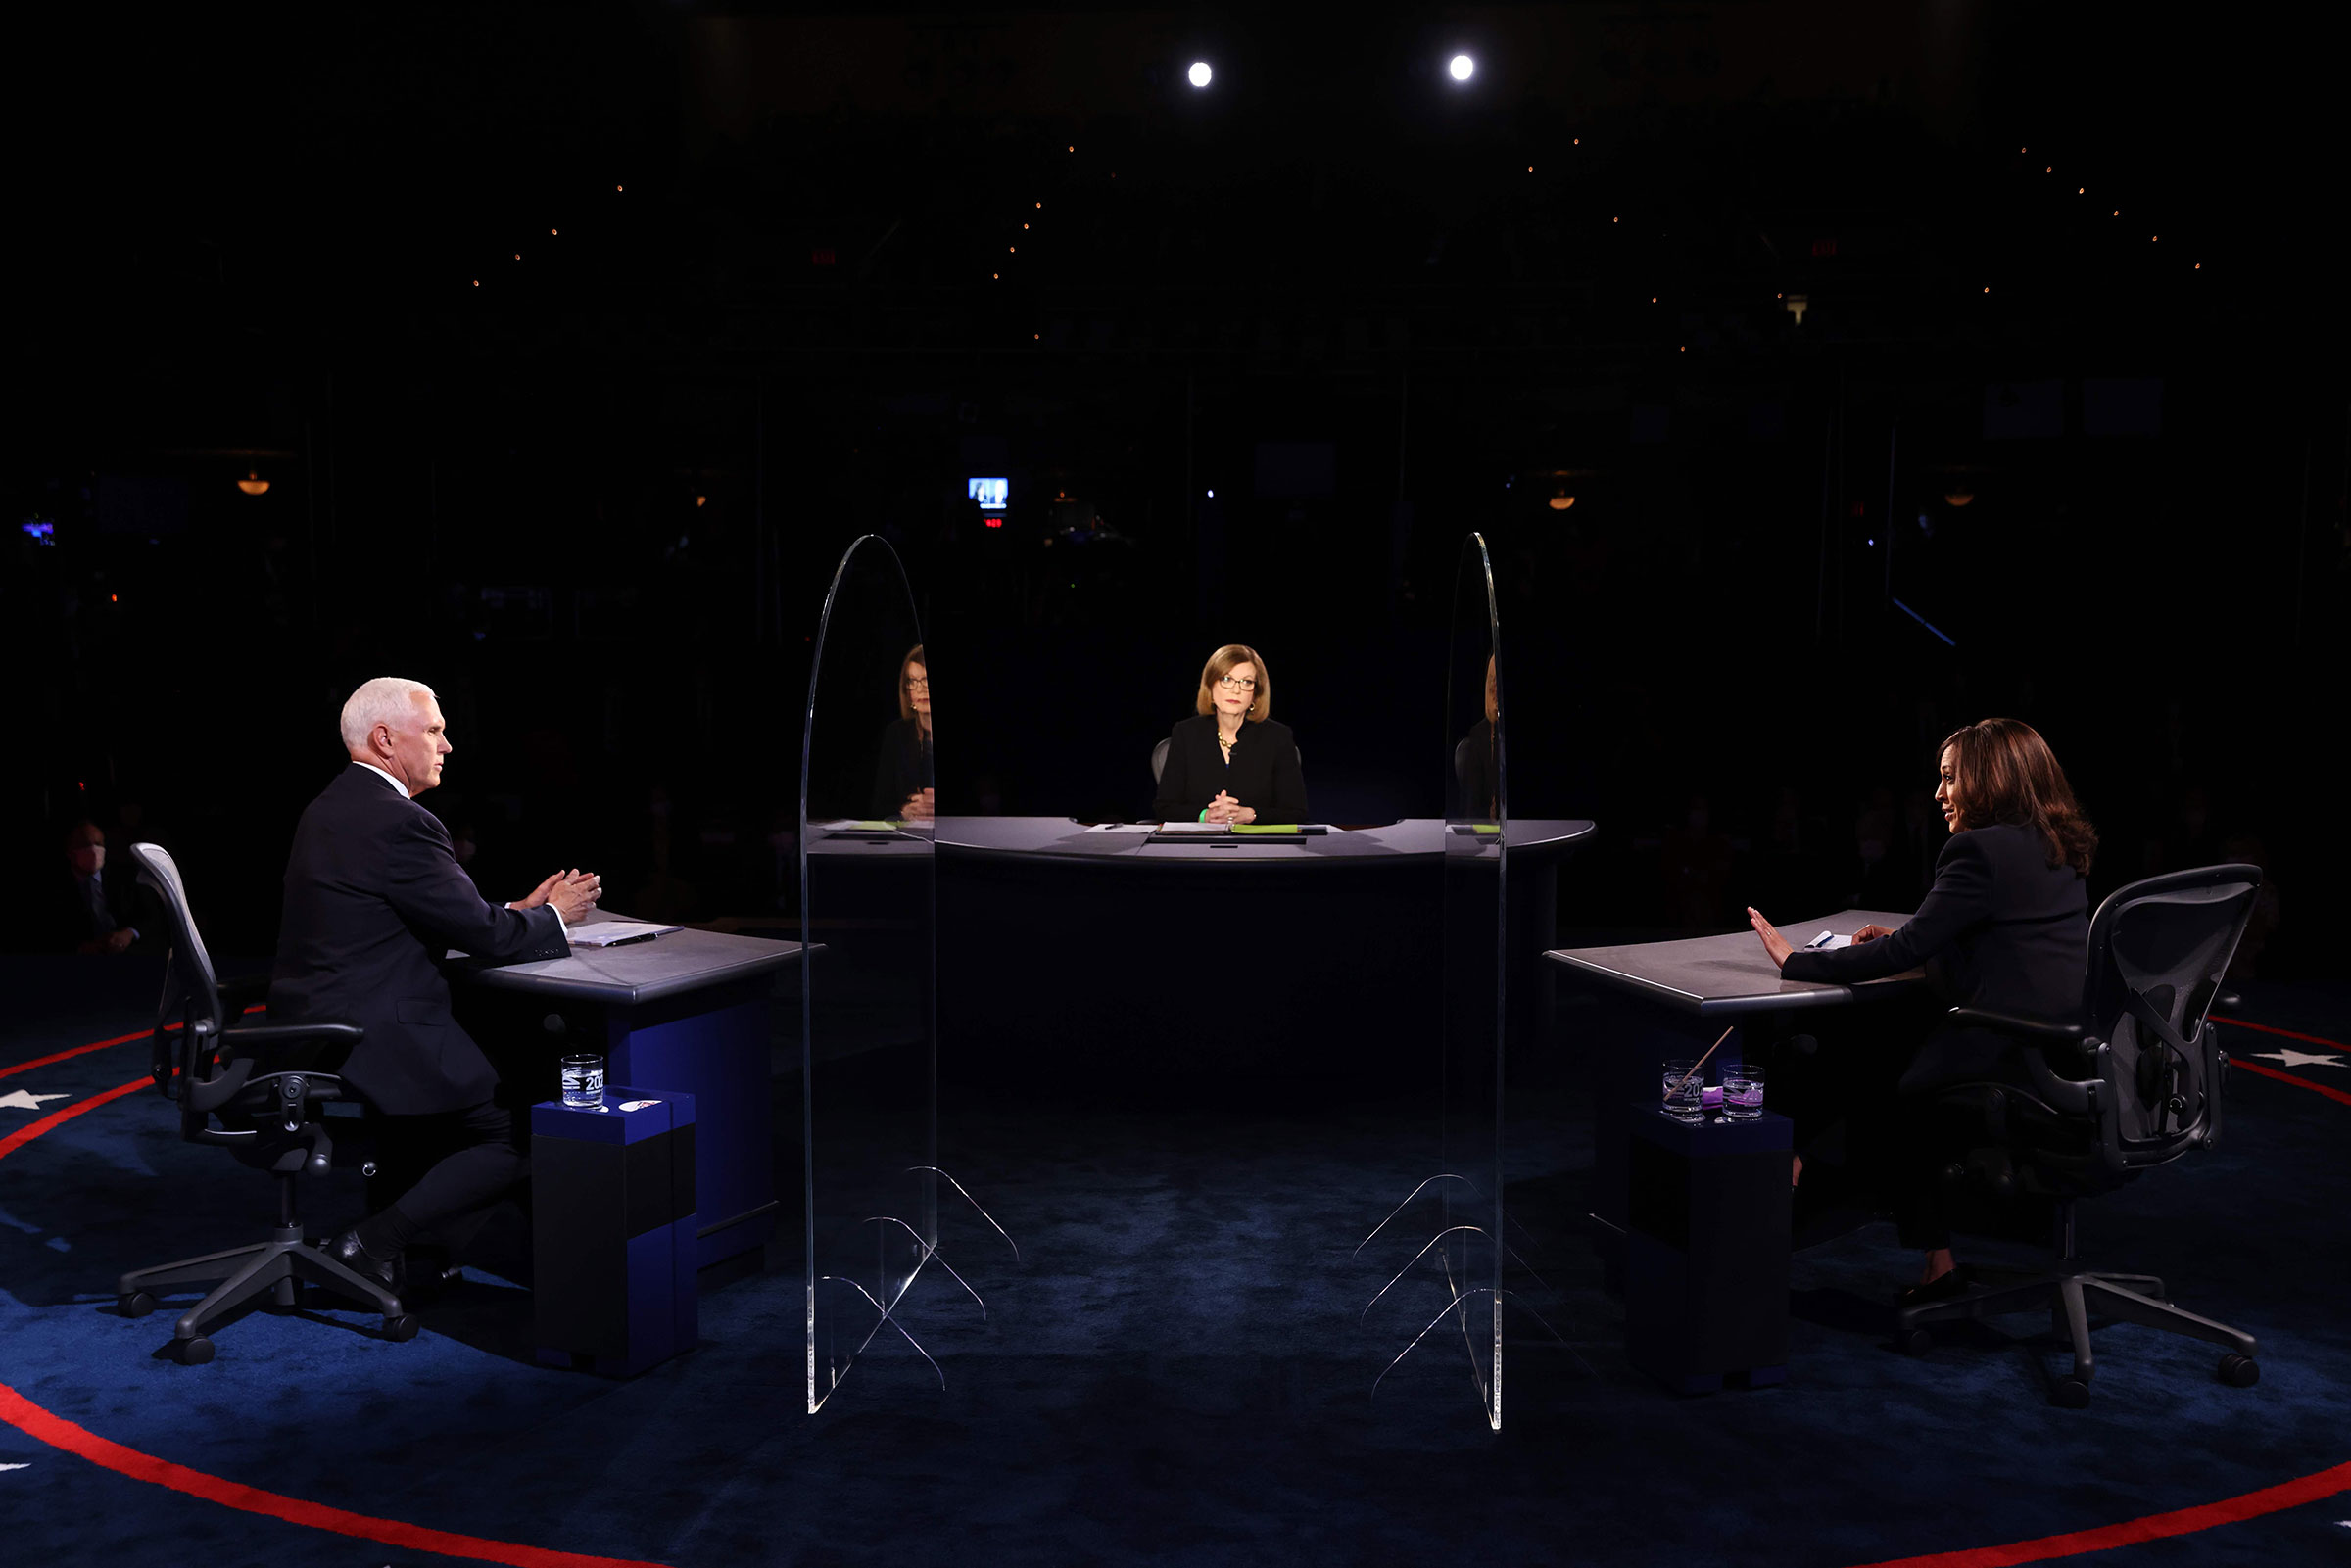 Vice President Mike and Pence Democratic vice presidential nominee and Senator Kamala Harris and moderator Washington Bureau Chief for USA Today Susan Page participate in the vice presidential debate on Oct. 7, 2020 in Salt Lake City, Utah.